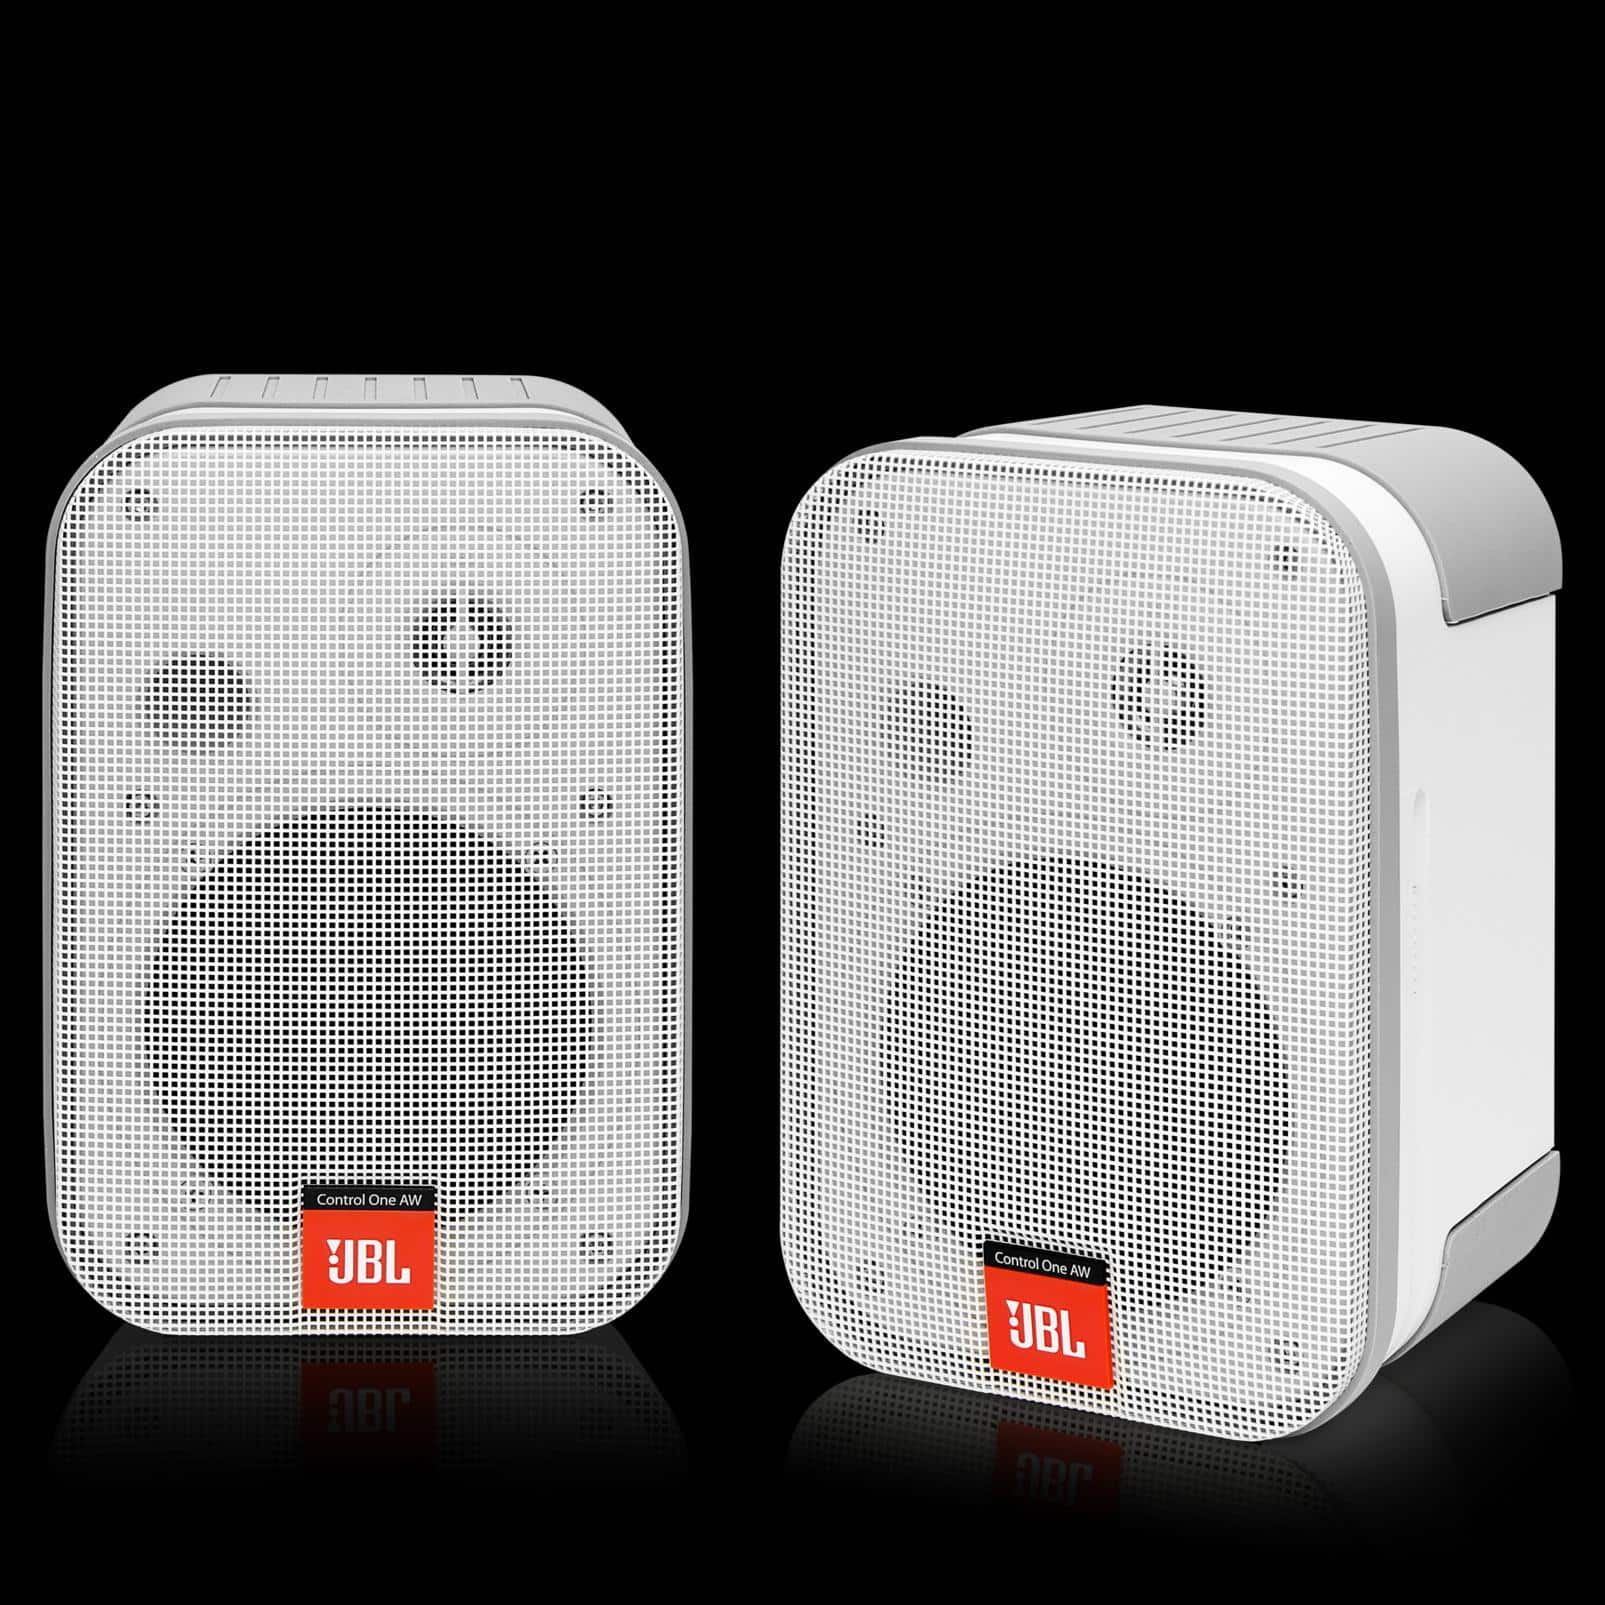 JBL Control One AW, Indoor/Outdoor Bookshelf Speakers $60 AC + Free Shipping!